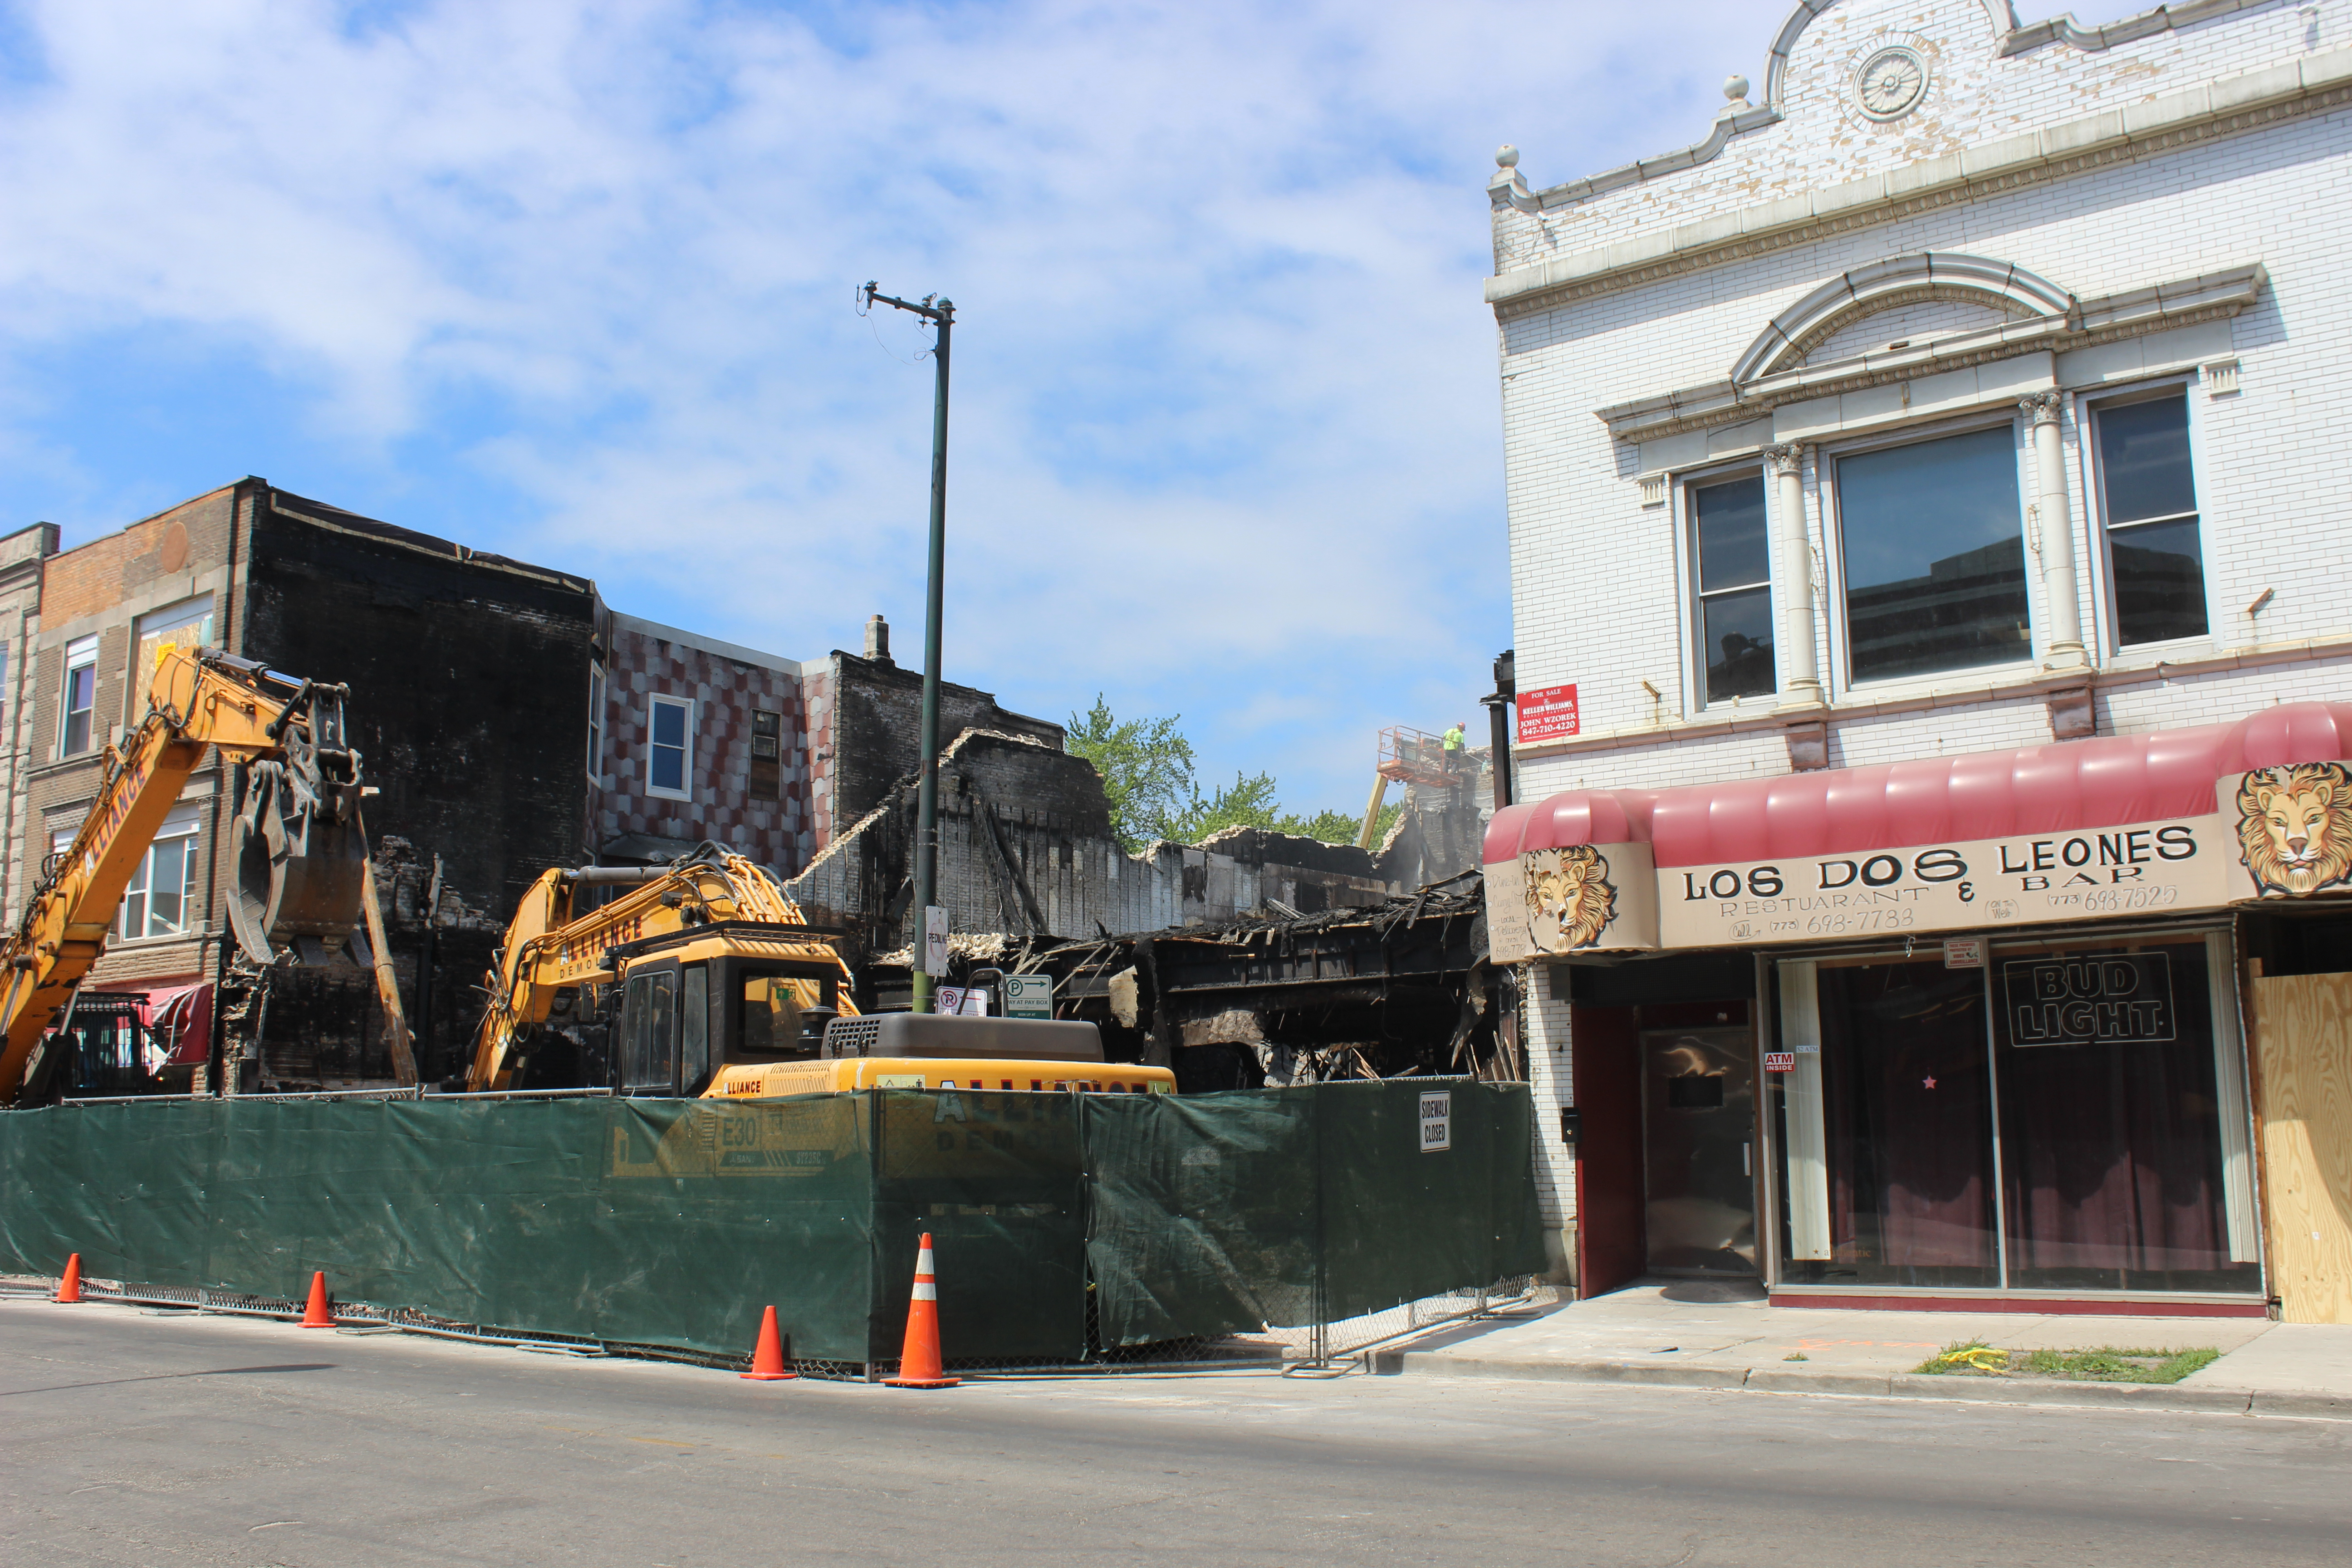 Furniture Store Destroyed In Fire Torn Down As Investigation Continues Avondale Chicago